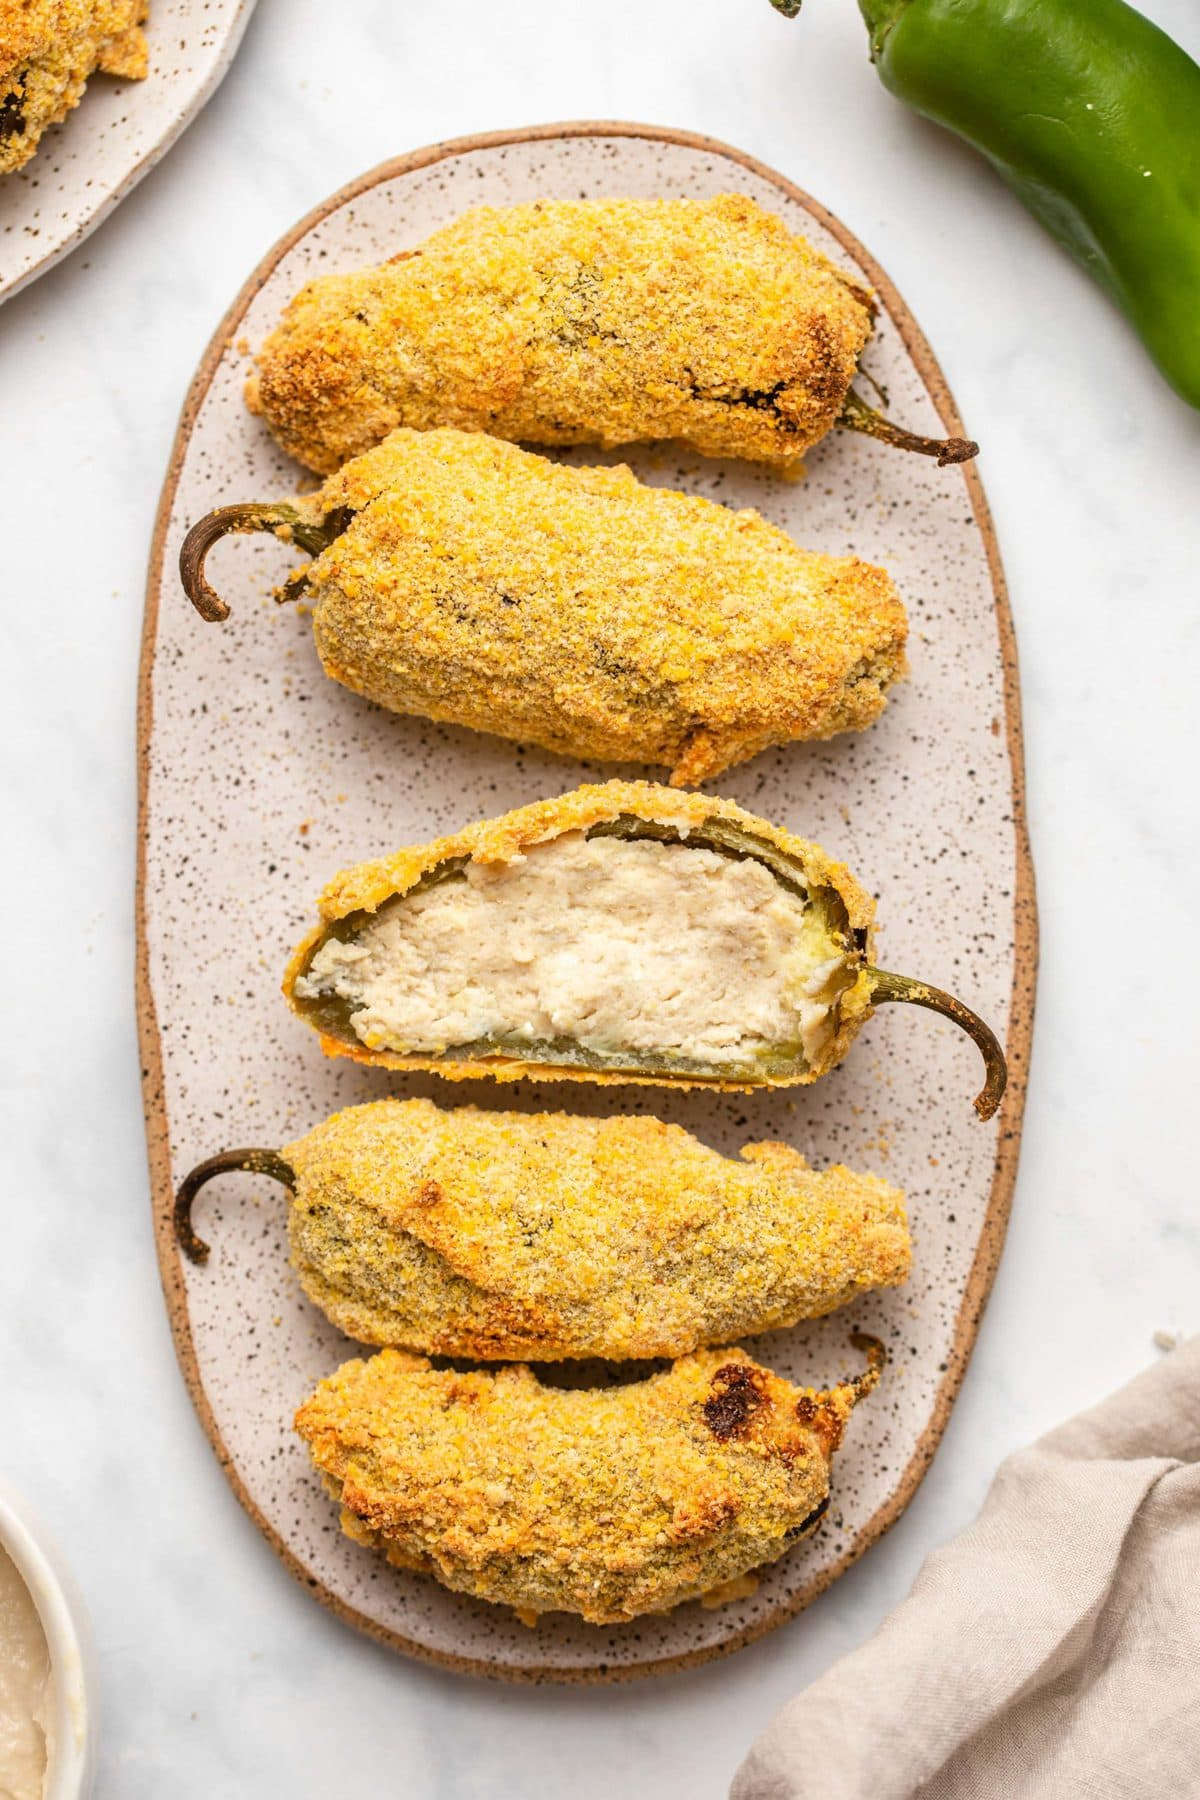 """Small plate of 5 jalapeño poppers, with one of them sliced in half to show the vegan """"cream cheese"""" filling"""